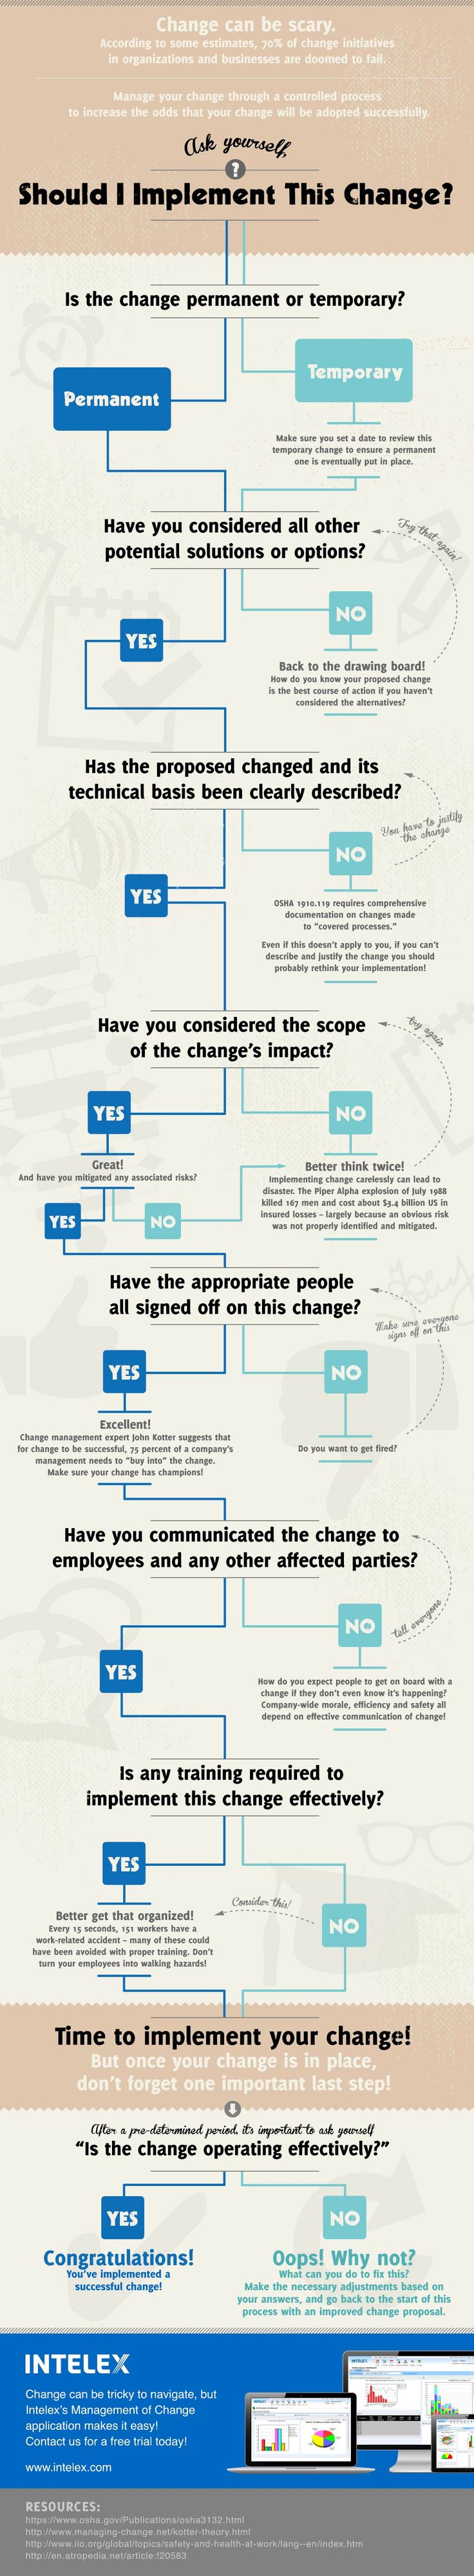 Change Management Simplified! (Infographic) #goalsetting and #KPI Experts Follow us now on Twitter @jamsovaluesmart and see the latest news on http://www.jamsovaluesmarter.com